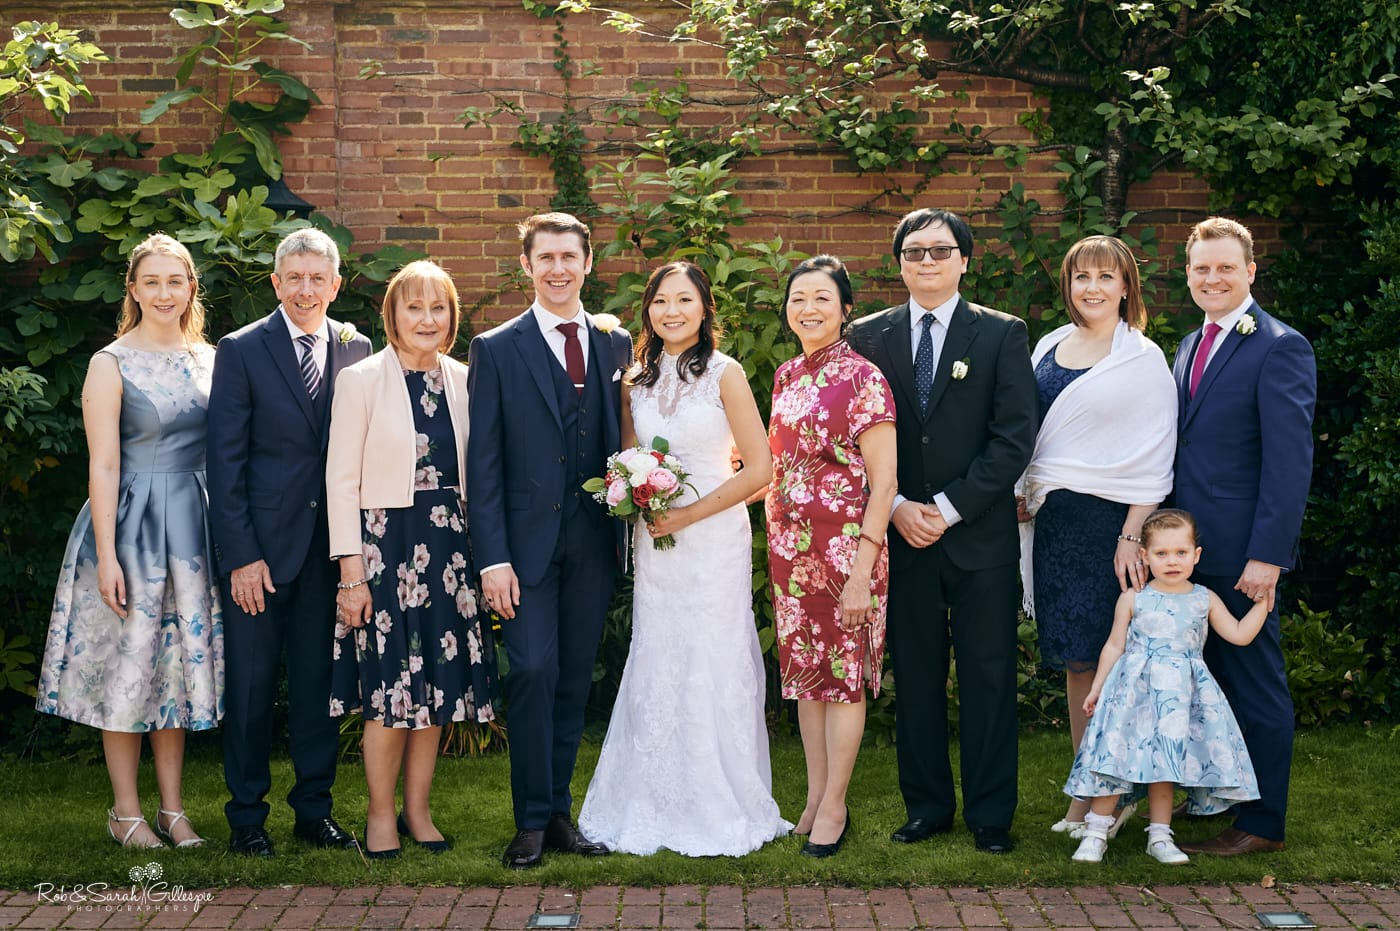 Small wedding family group photo in beautiful gardens